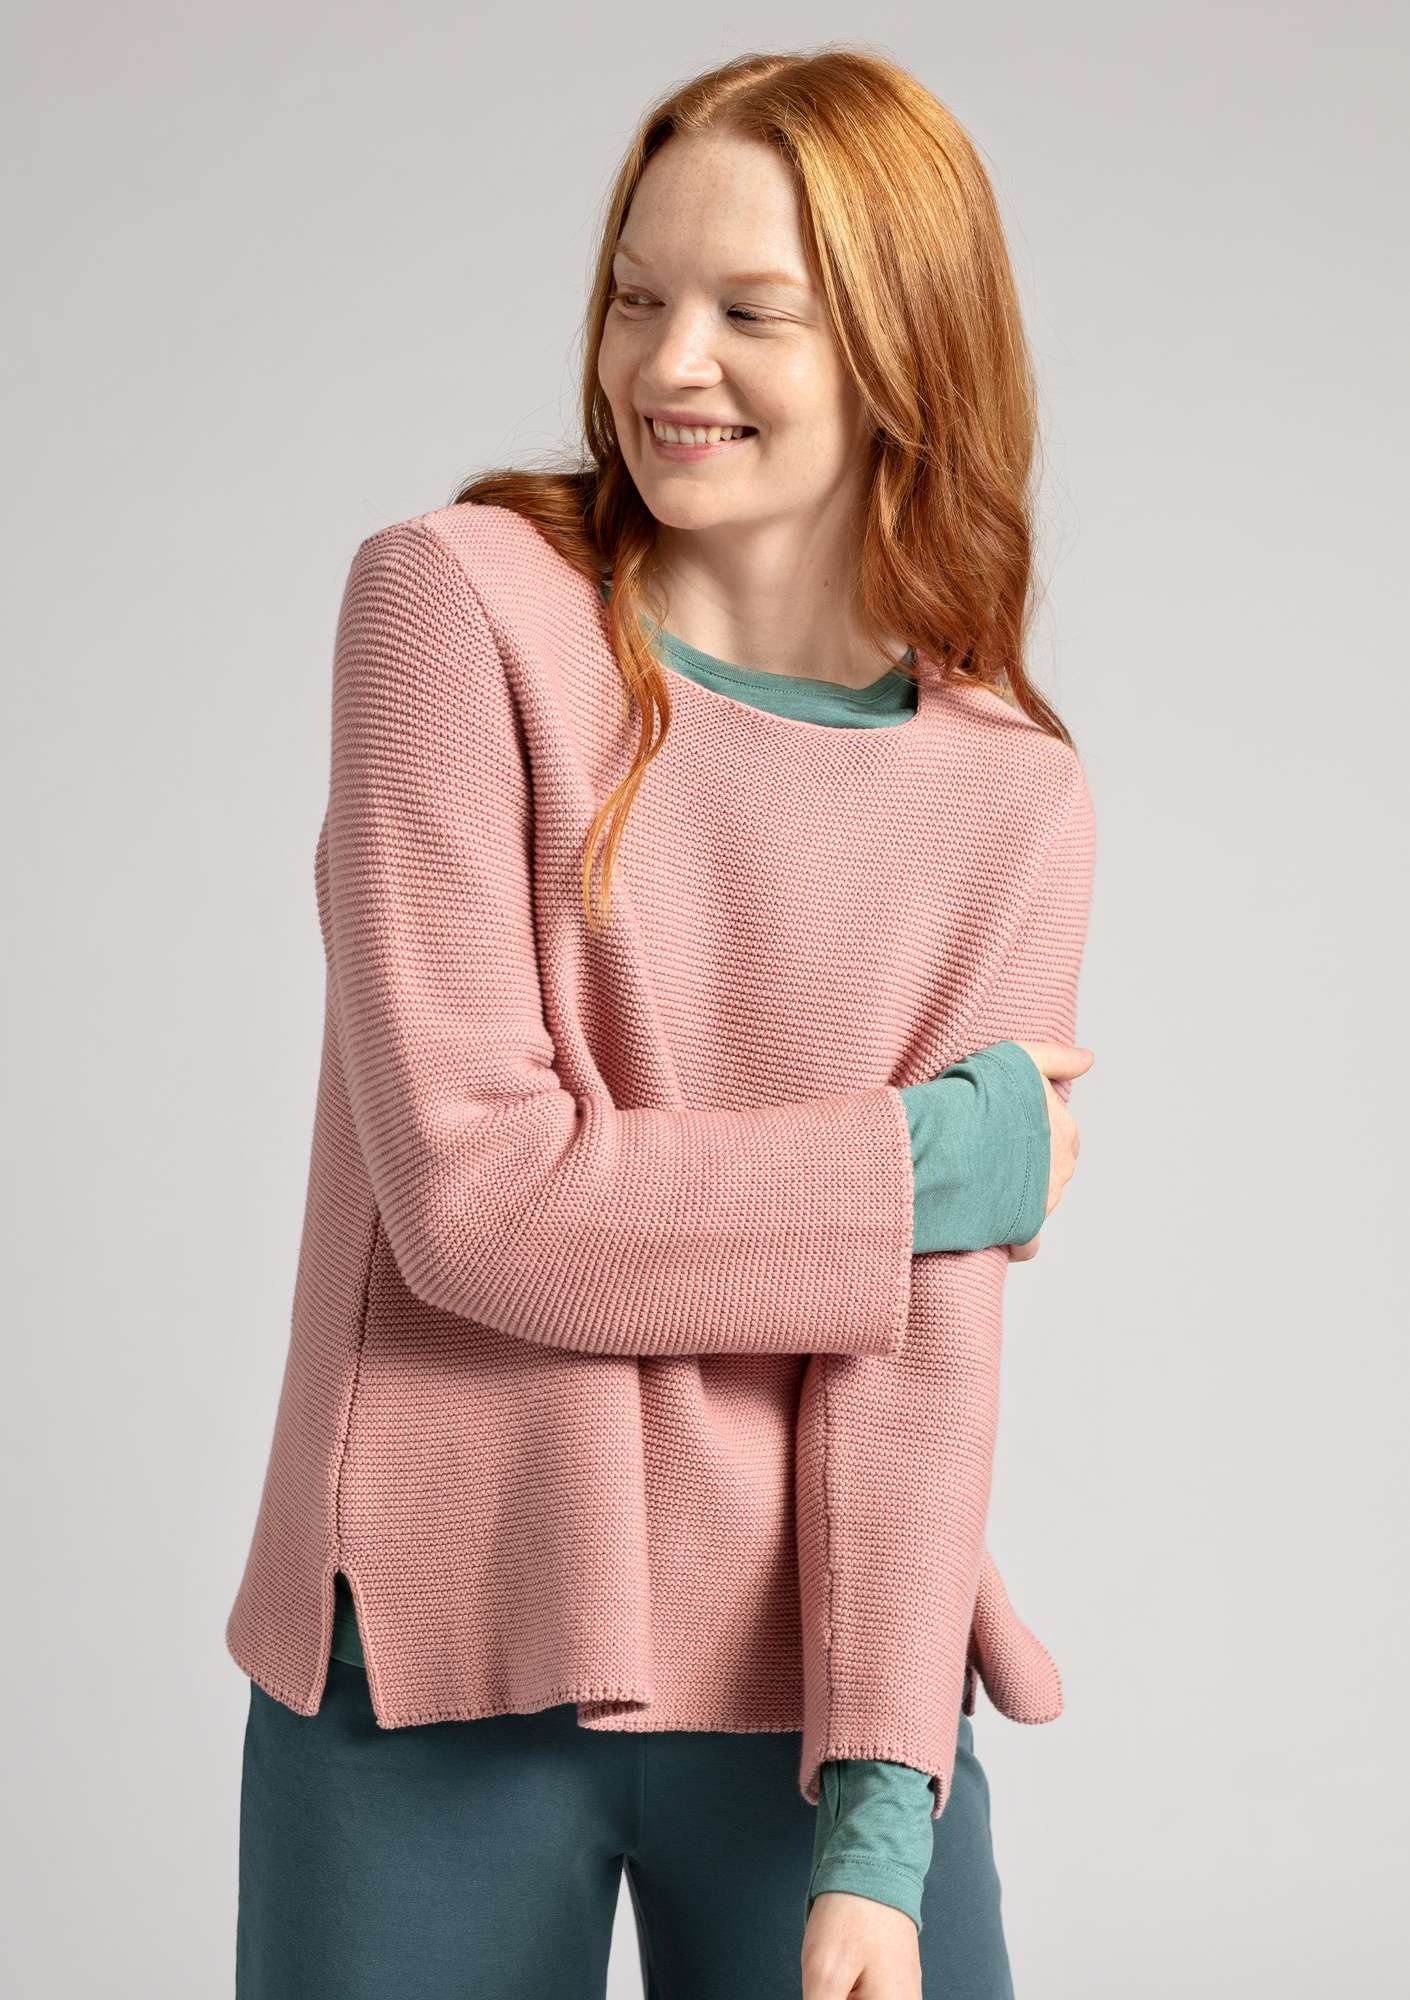 Pull au point mousse en écocoton rose estompé